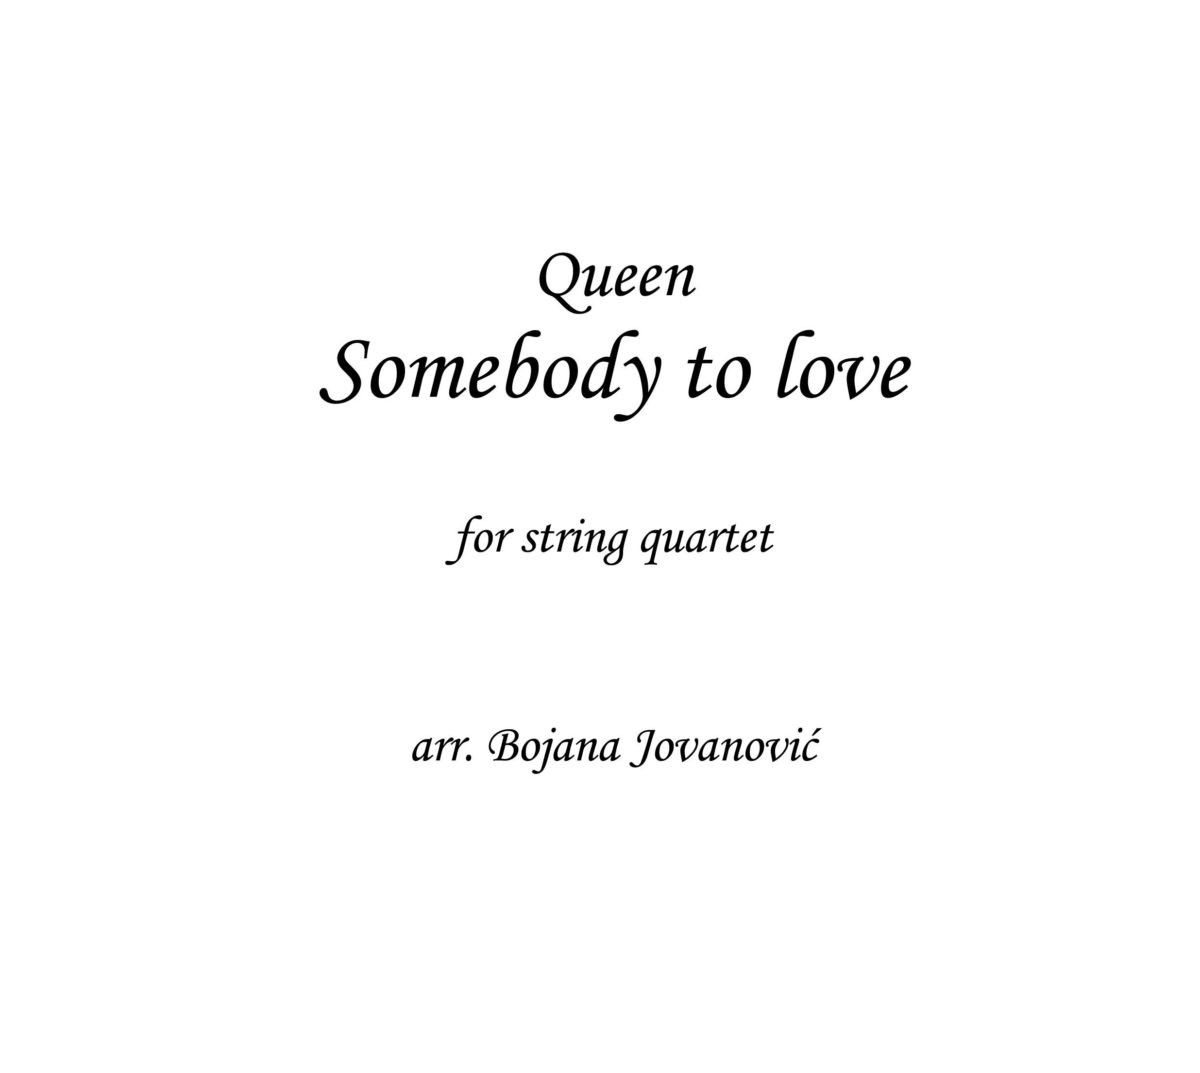 Somebody to love (Queen) - Sheet Music